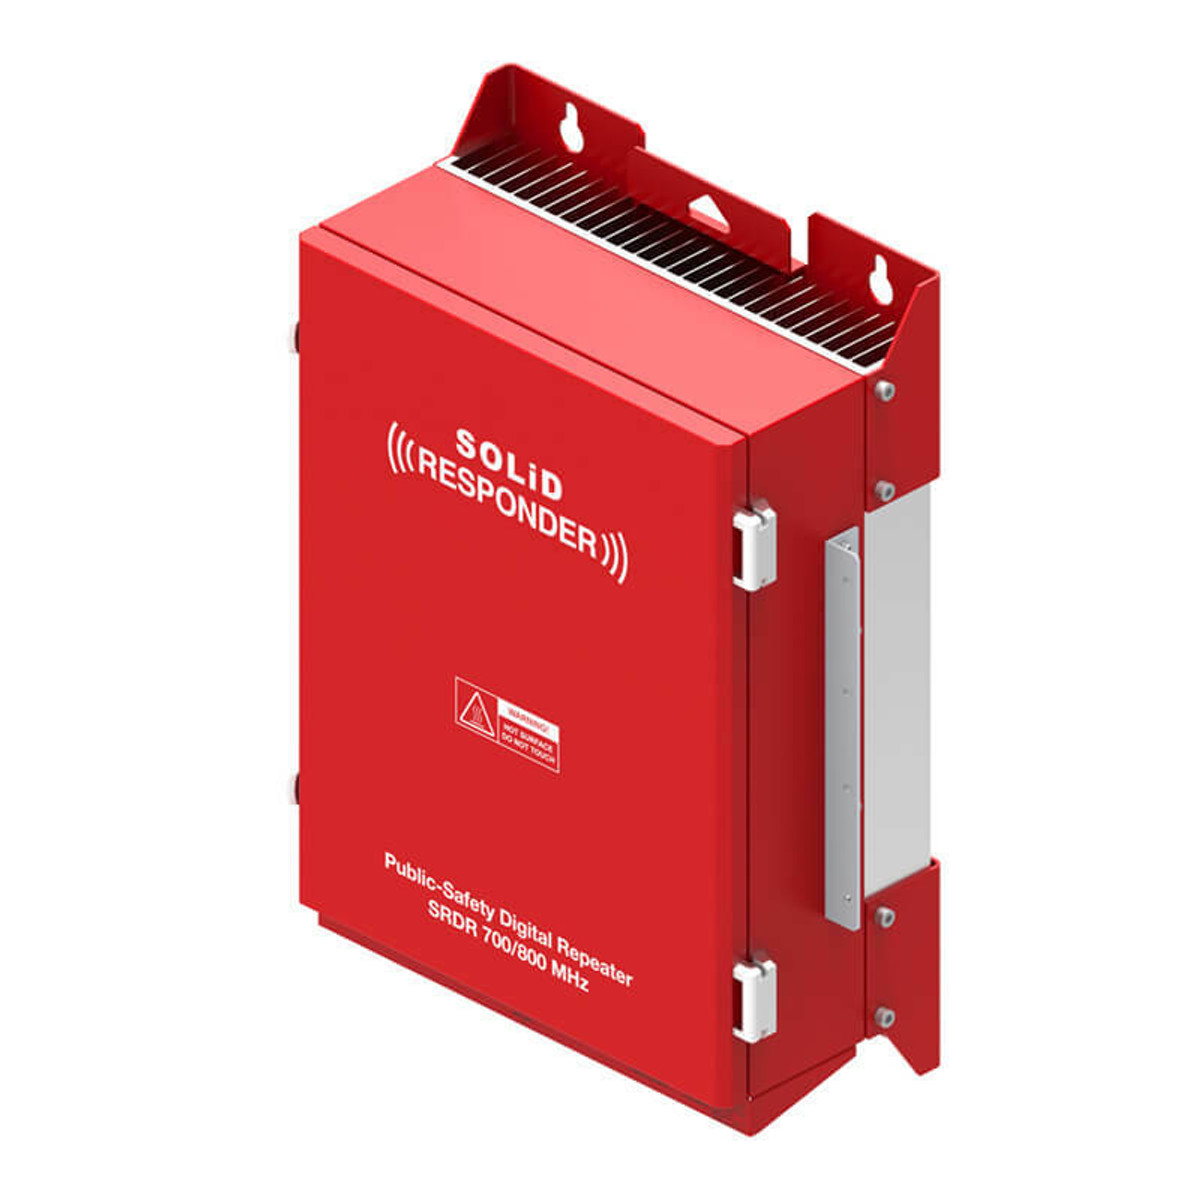 SOLiD Solid Responder 700/800 MHz Public Safety Digital Repeater